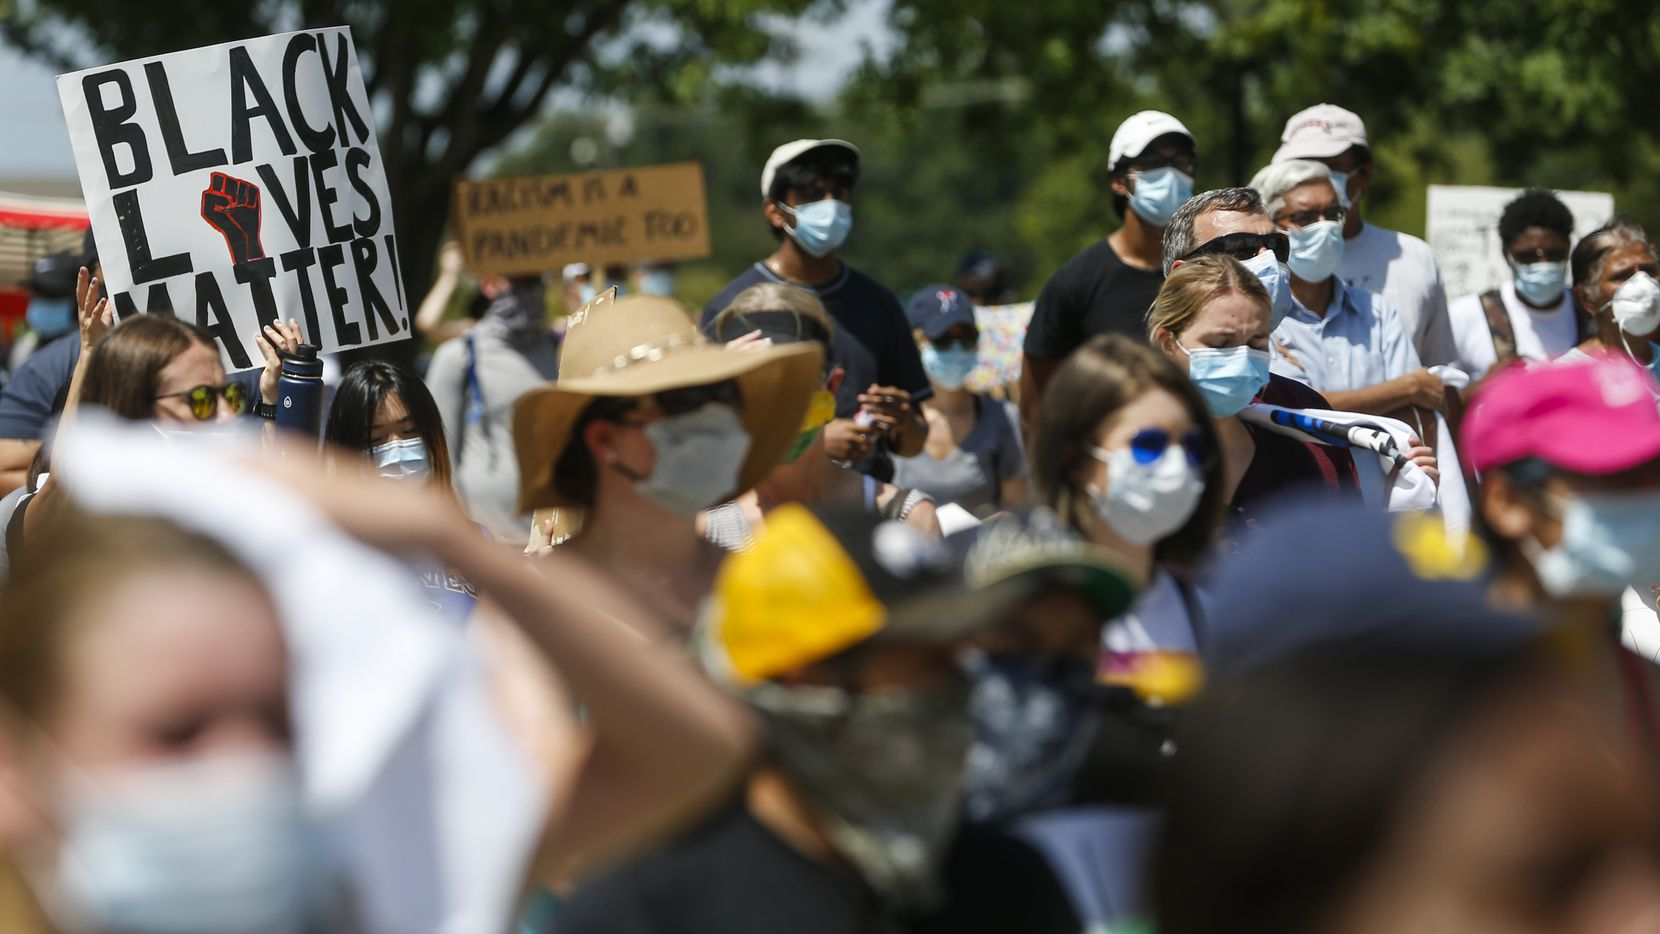 People gather at the Plano Municipal Building for the Hungry for Change Rally on Sunday, June 7, 2020, in Plano, Texas. (Ryan Michalesko/The Dallas Morning News)